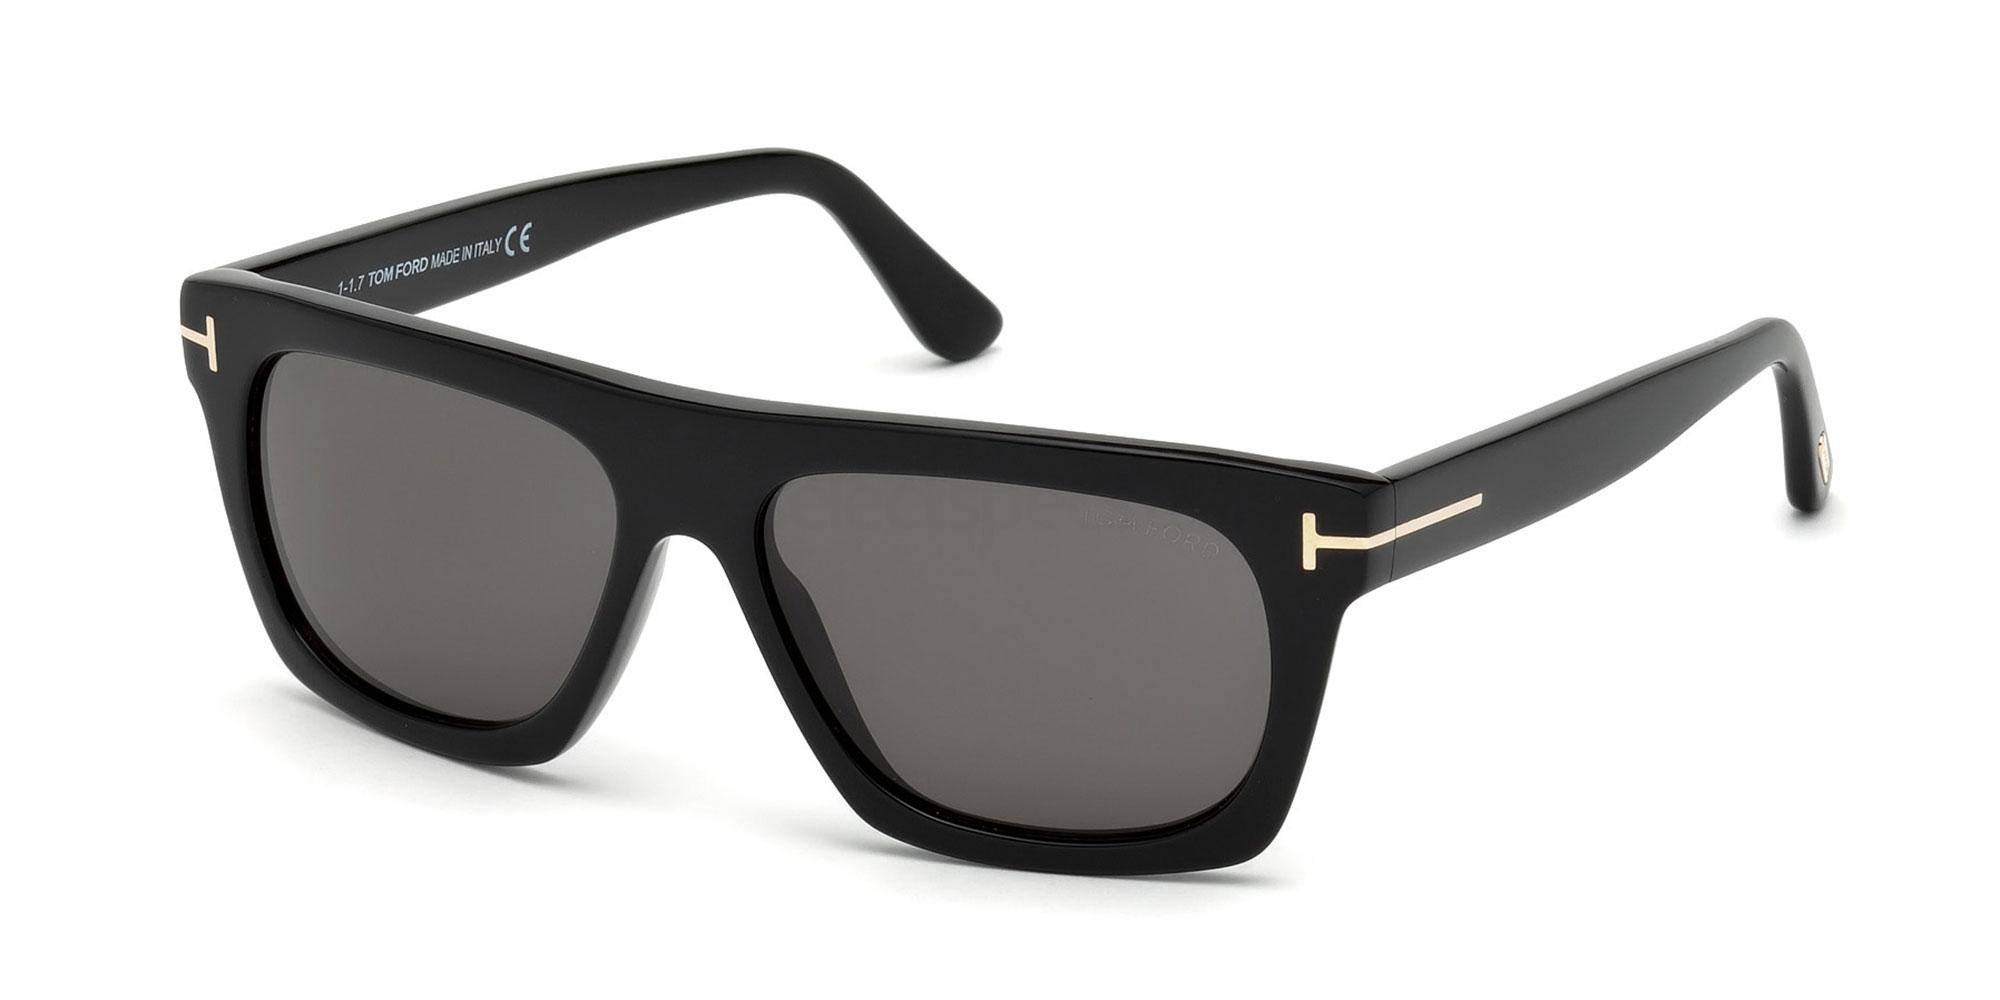 01A FT0592 Sunglasses, Tom Ford